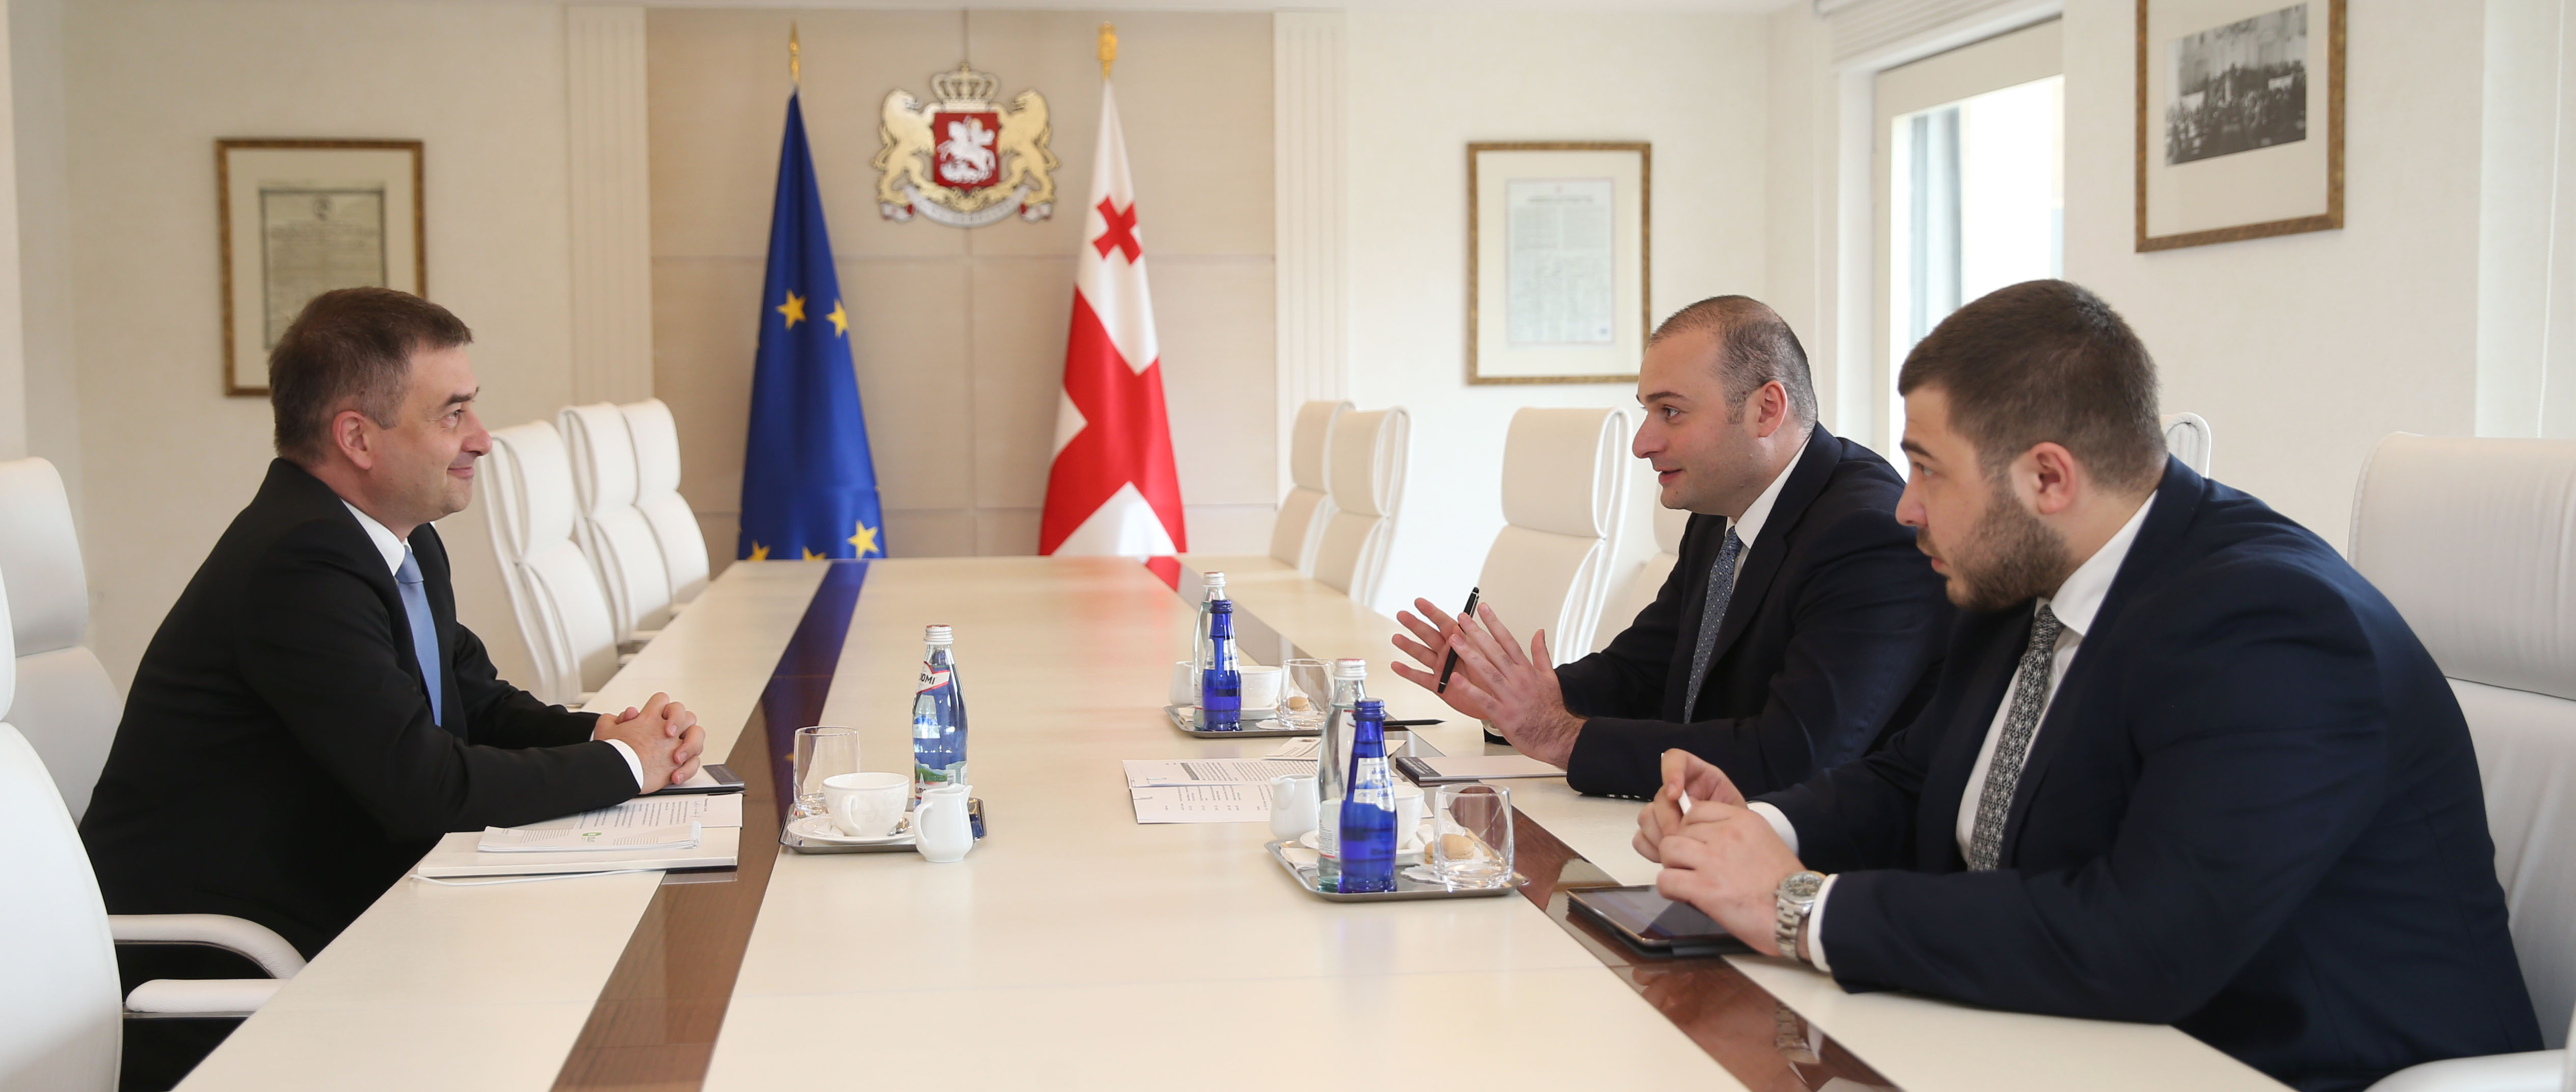 The Head of the Council of Europe Office in Georgia met with the Prime Minister